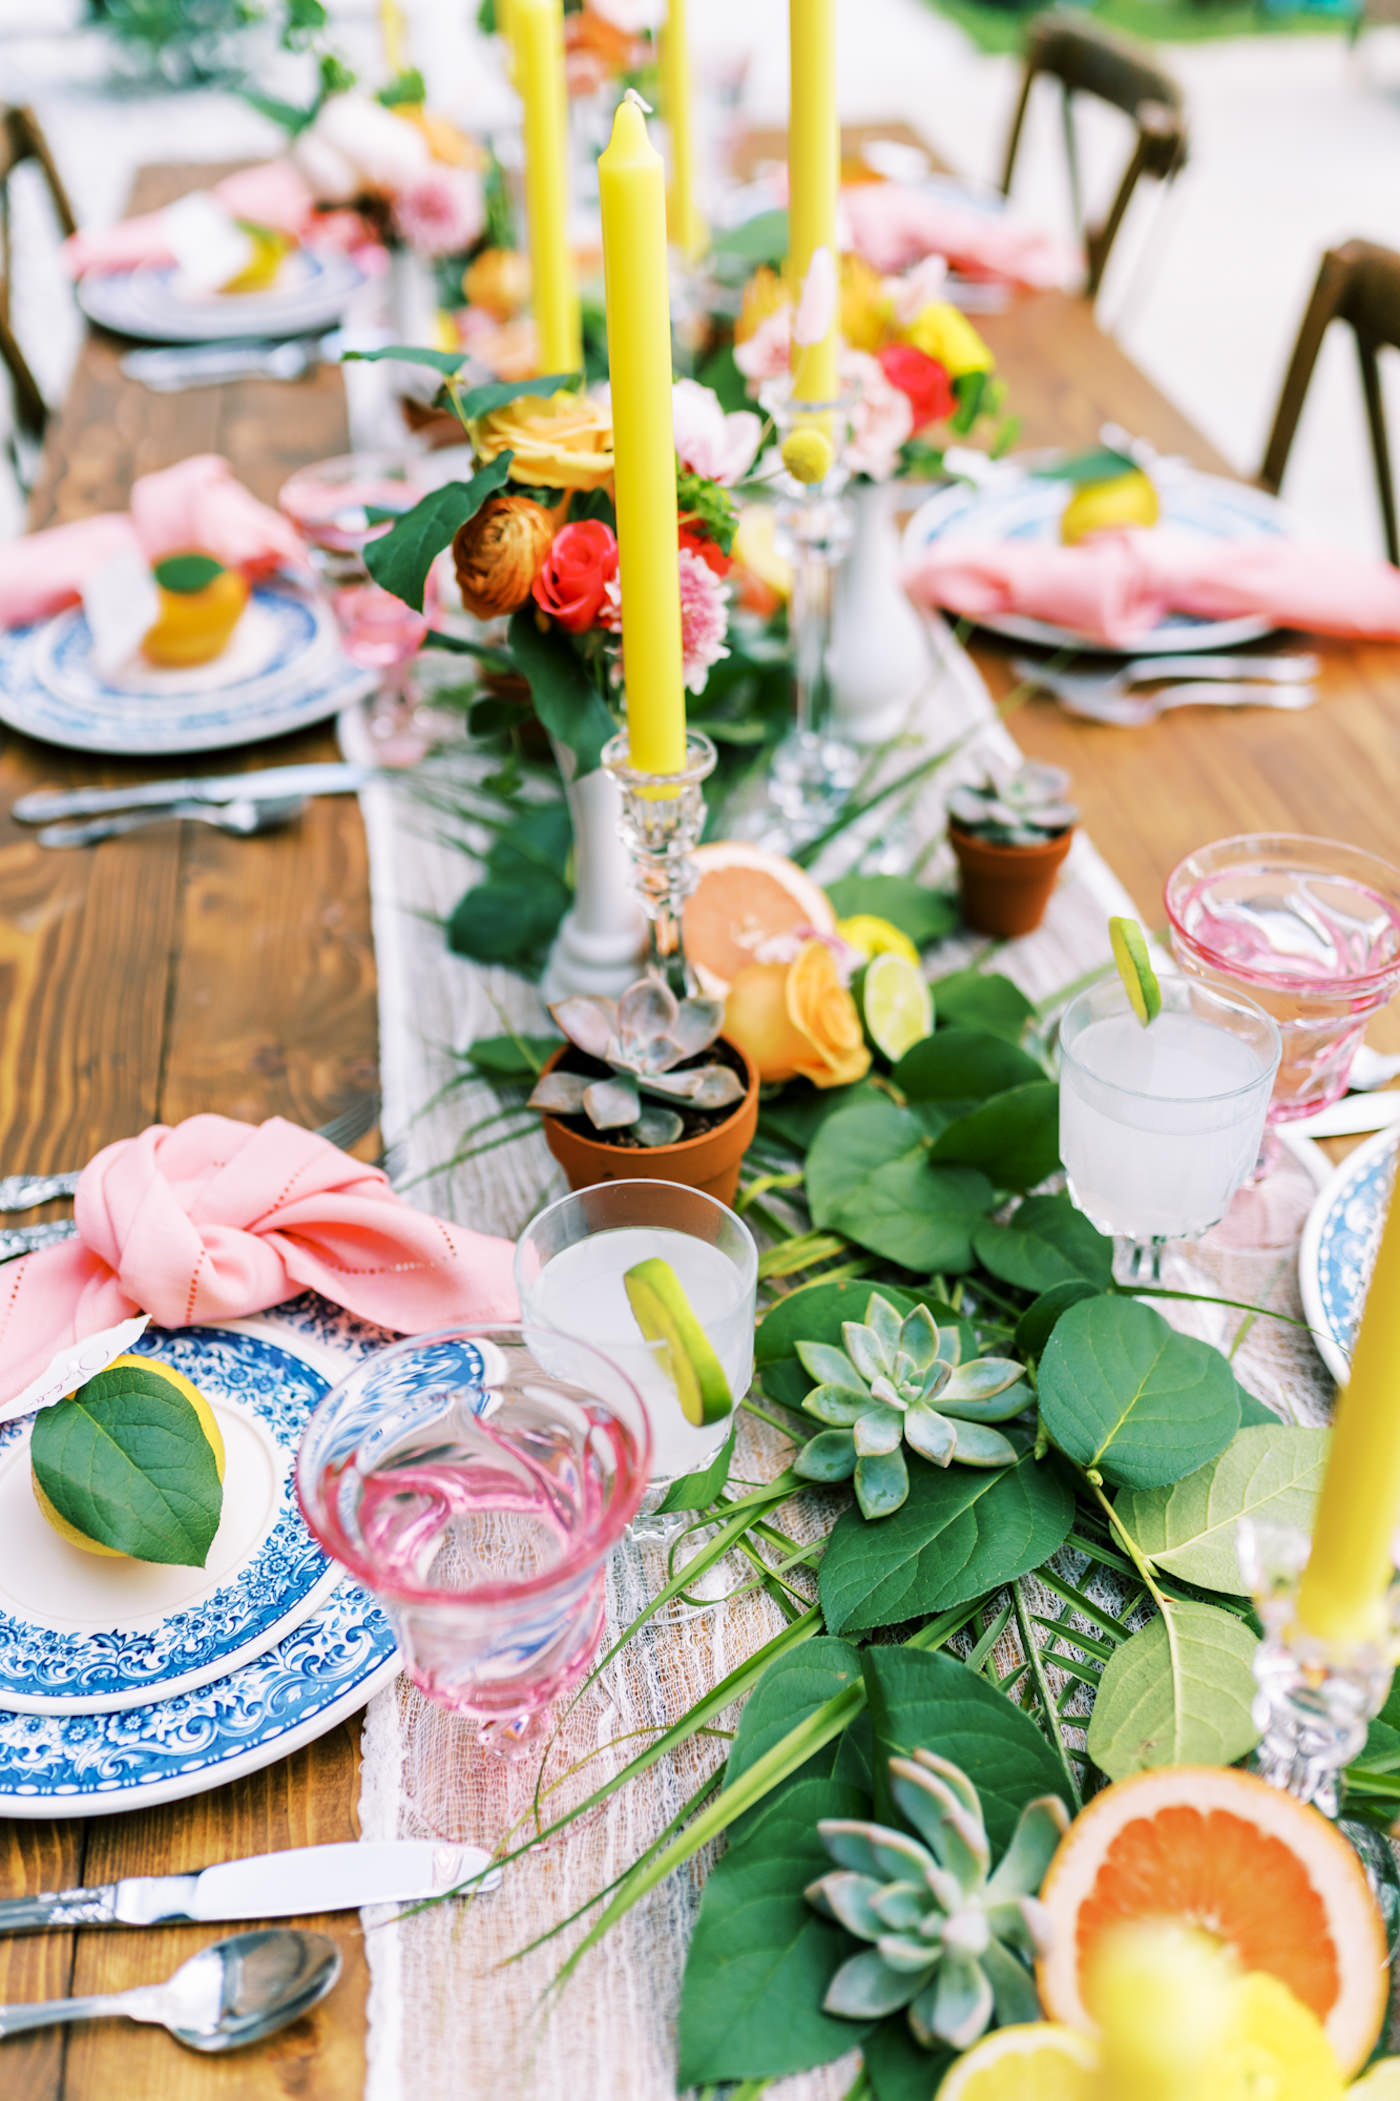 Bright Colorful Florida Citrus Wedding Inspiration | Outdoor Reception Wood Farm Feasting Table Wedding Centerpiece with Greenery Garland with Oranges and Succulents and Colorful Taper Candles | Wedding Place Settings with Vintage Blue China and Pink Glass Goblets and Pink Napkins